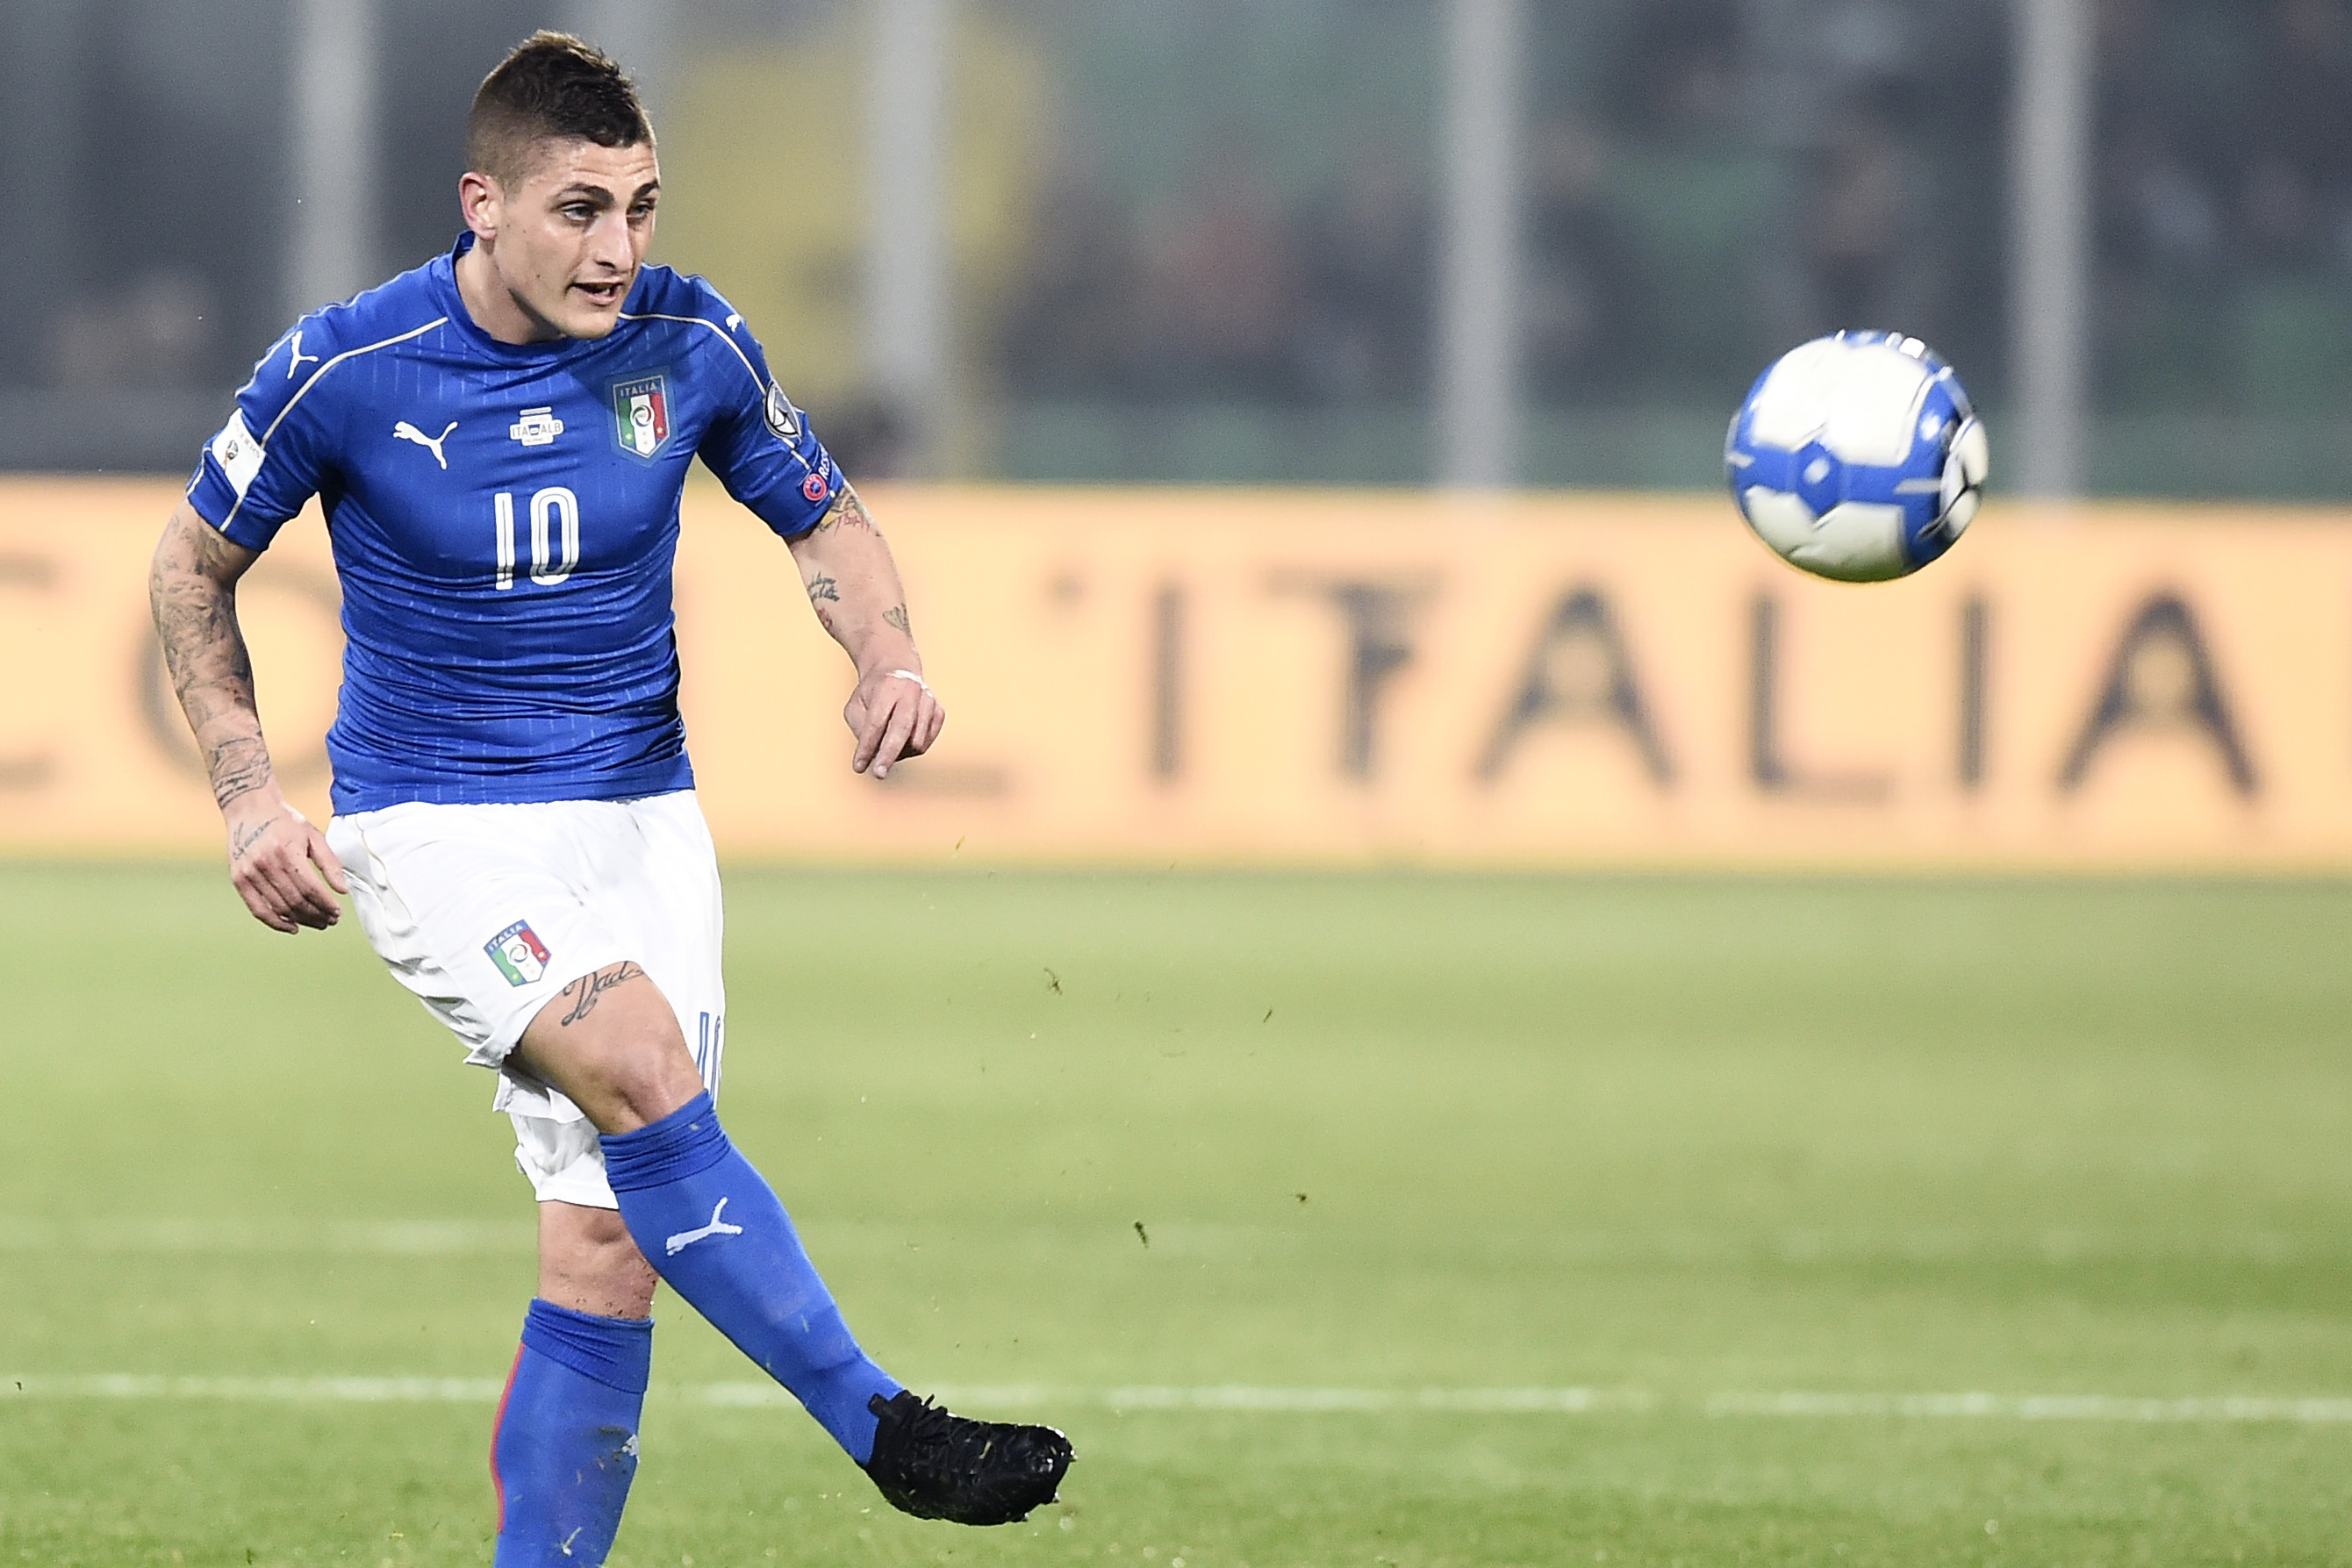 Football - Coupe du monde - Pays Bas - Italie en direct